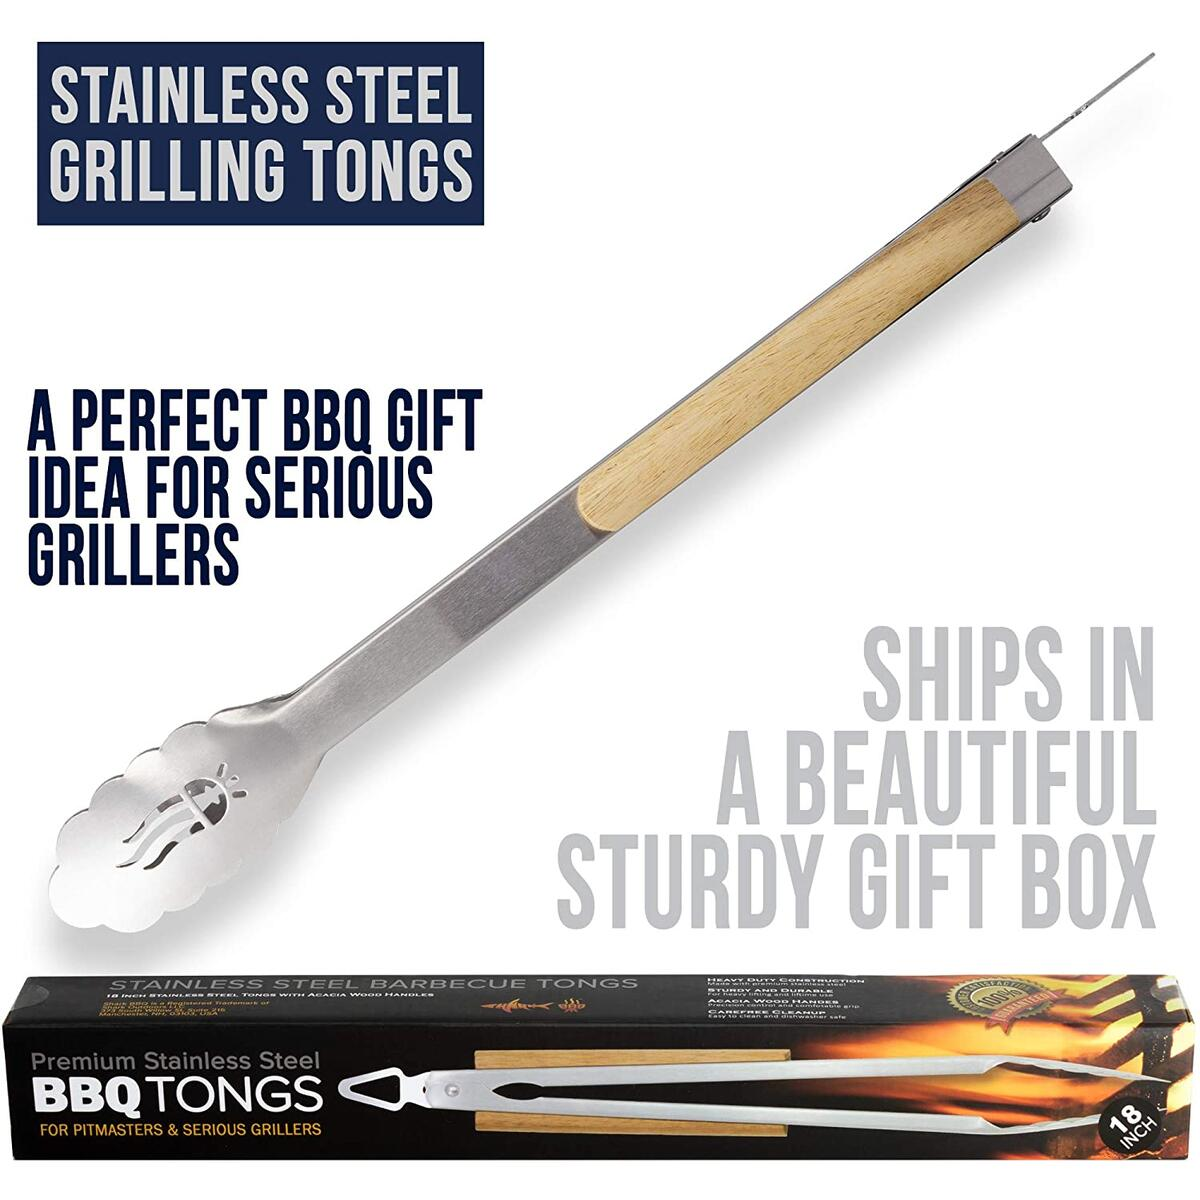 Grilling Tools BBQ Tongs - Heavy Duty Barbecue Tong w Acacia Wood Grips - 18 Inch Long Stainless Steel Meat Turner for Serious Grillers and Pitmasters - New 2020 Model